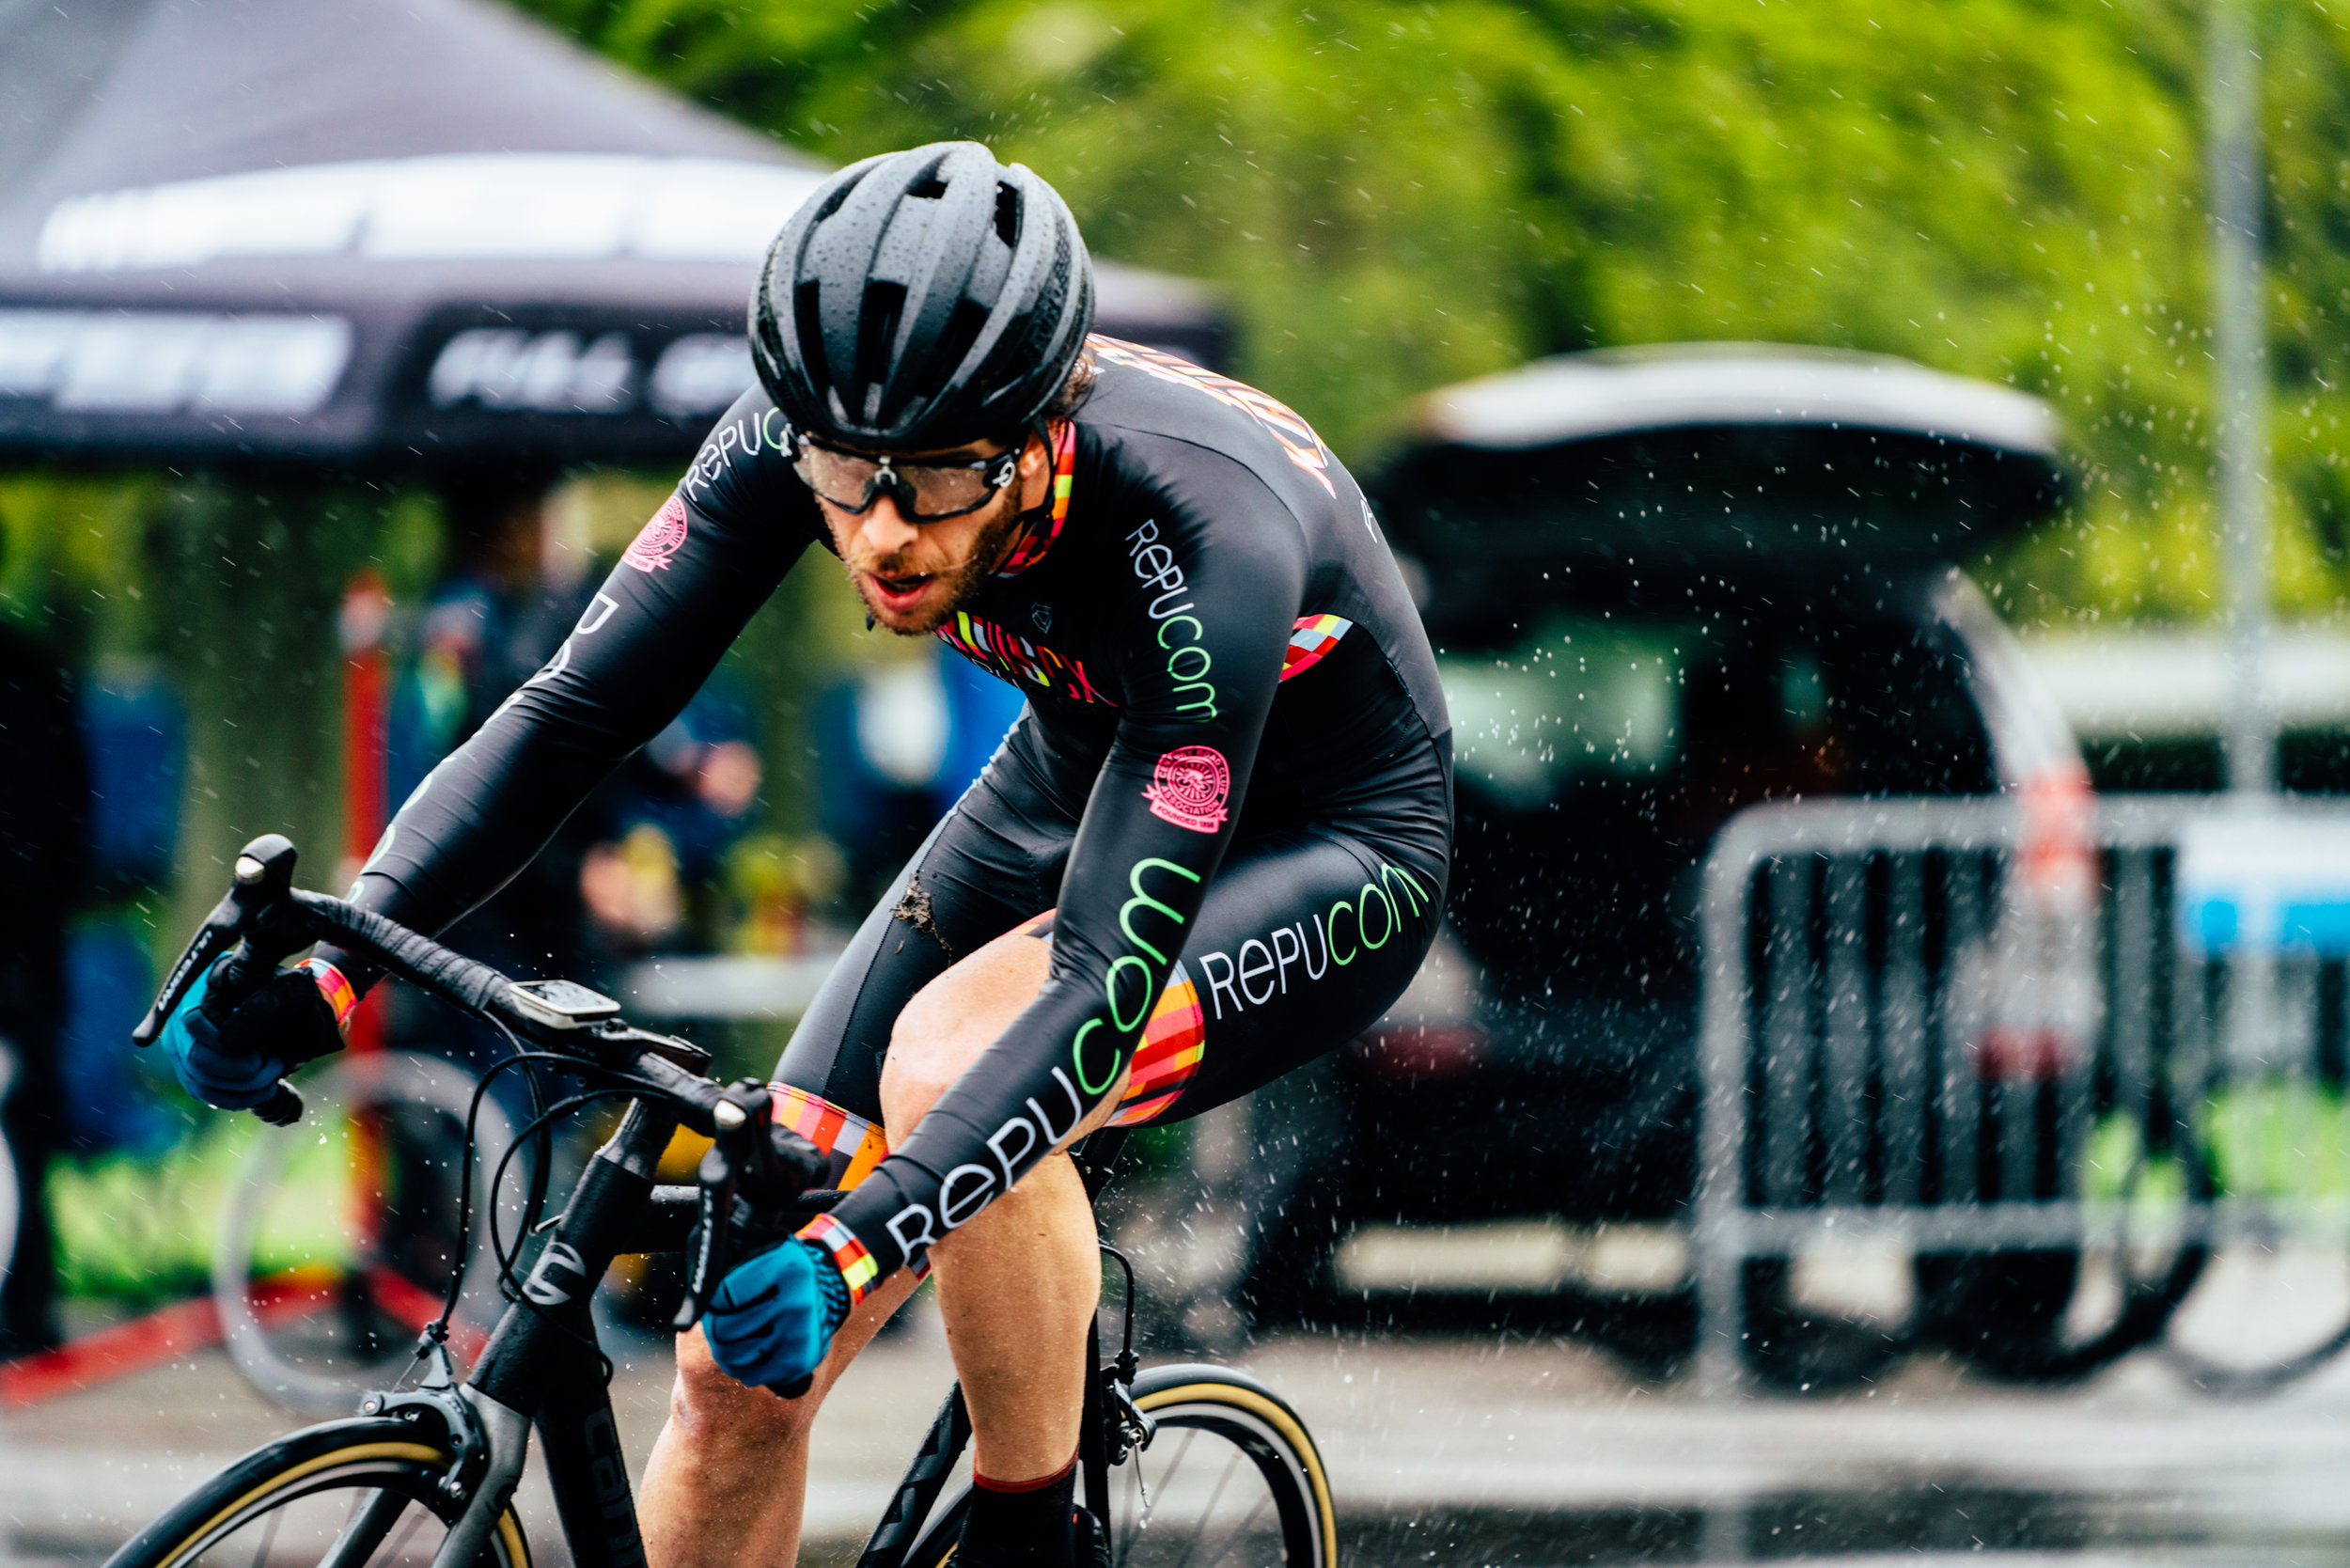 Photo Rhetoric - To Be Determined - Zach Koop Memorial Crit at Orchard Bearch-3012.jpg